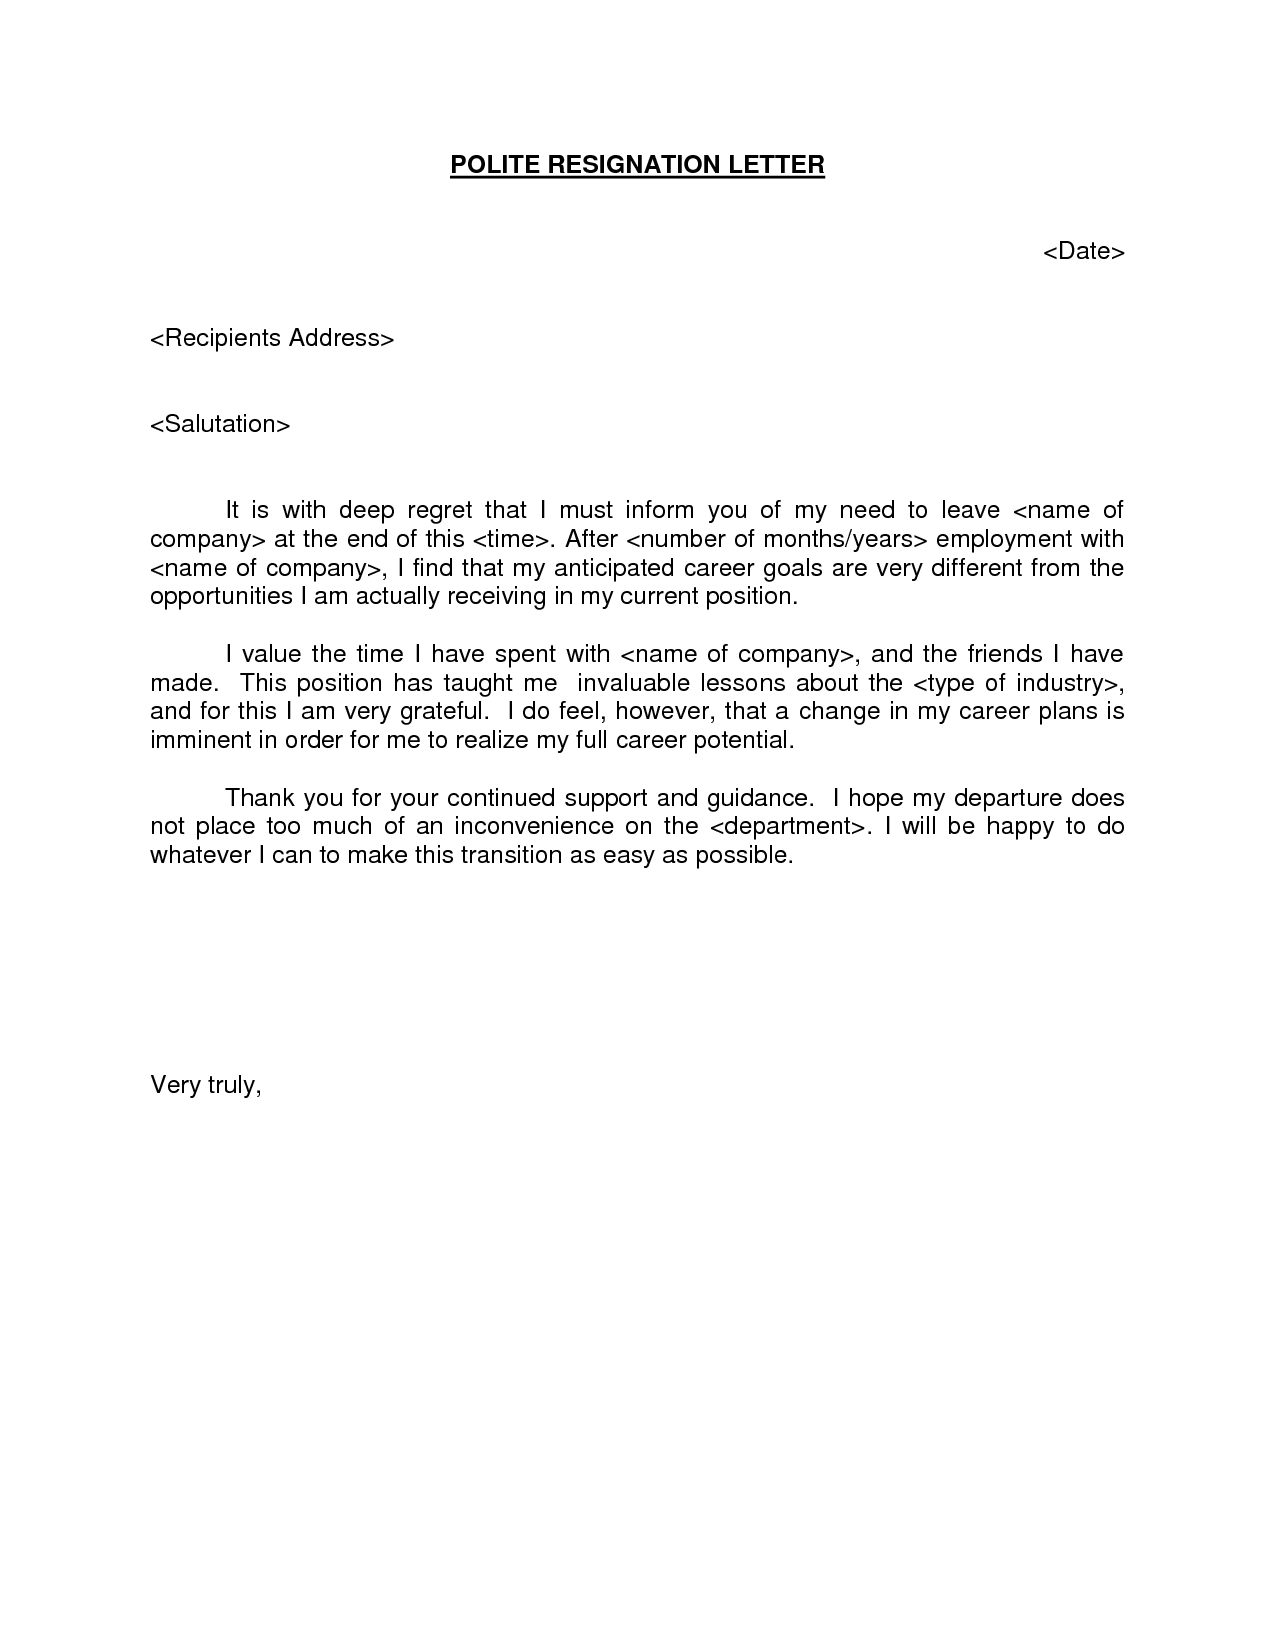 Polite resignation letter bestdealformoneywriting a letter of polite resignation letter bestdealformoneywriting a letter of resignation email letter sample spiritdancerdesigns Image collections